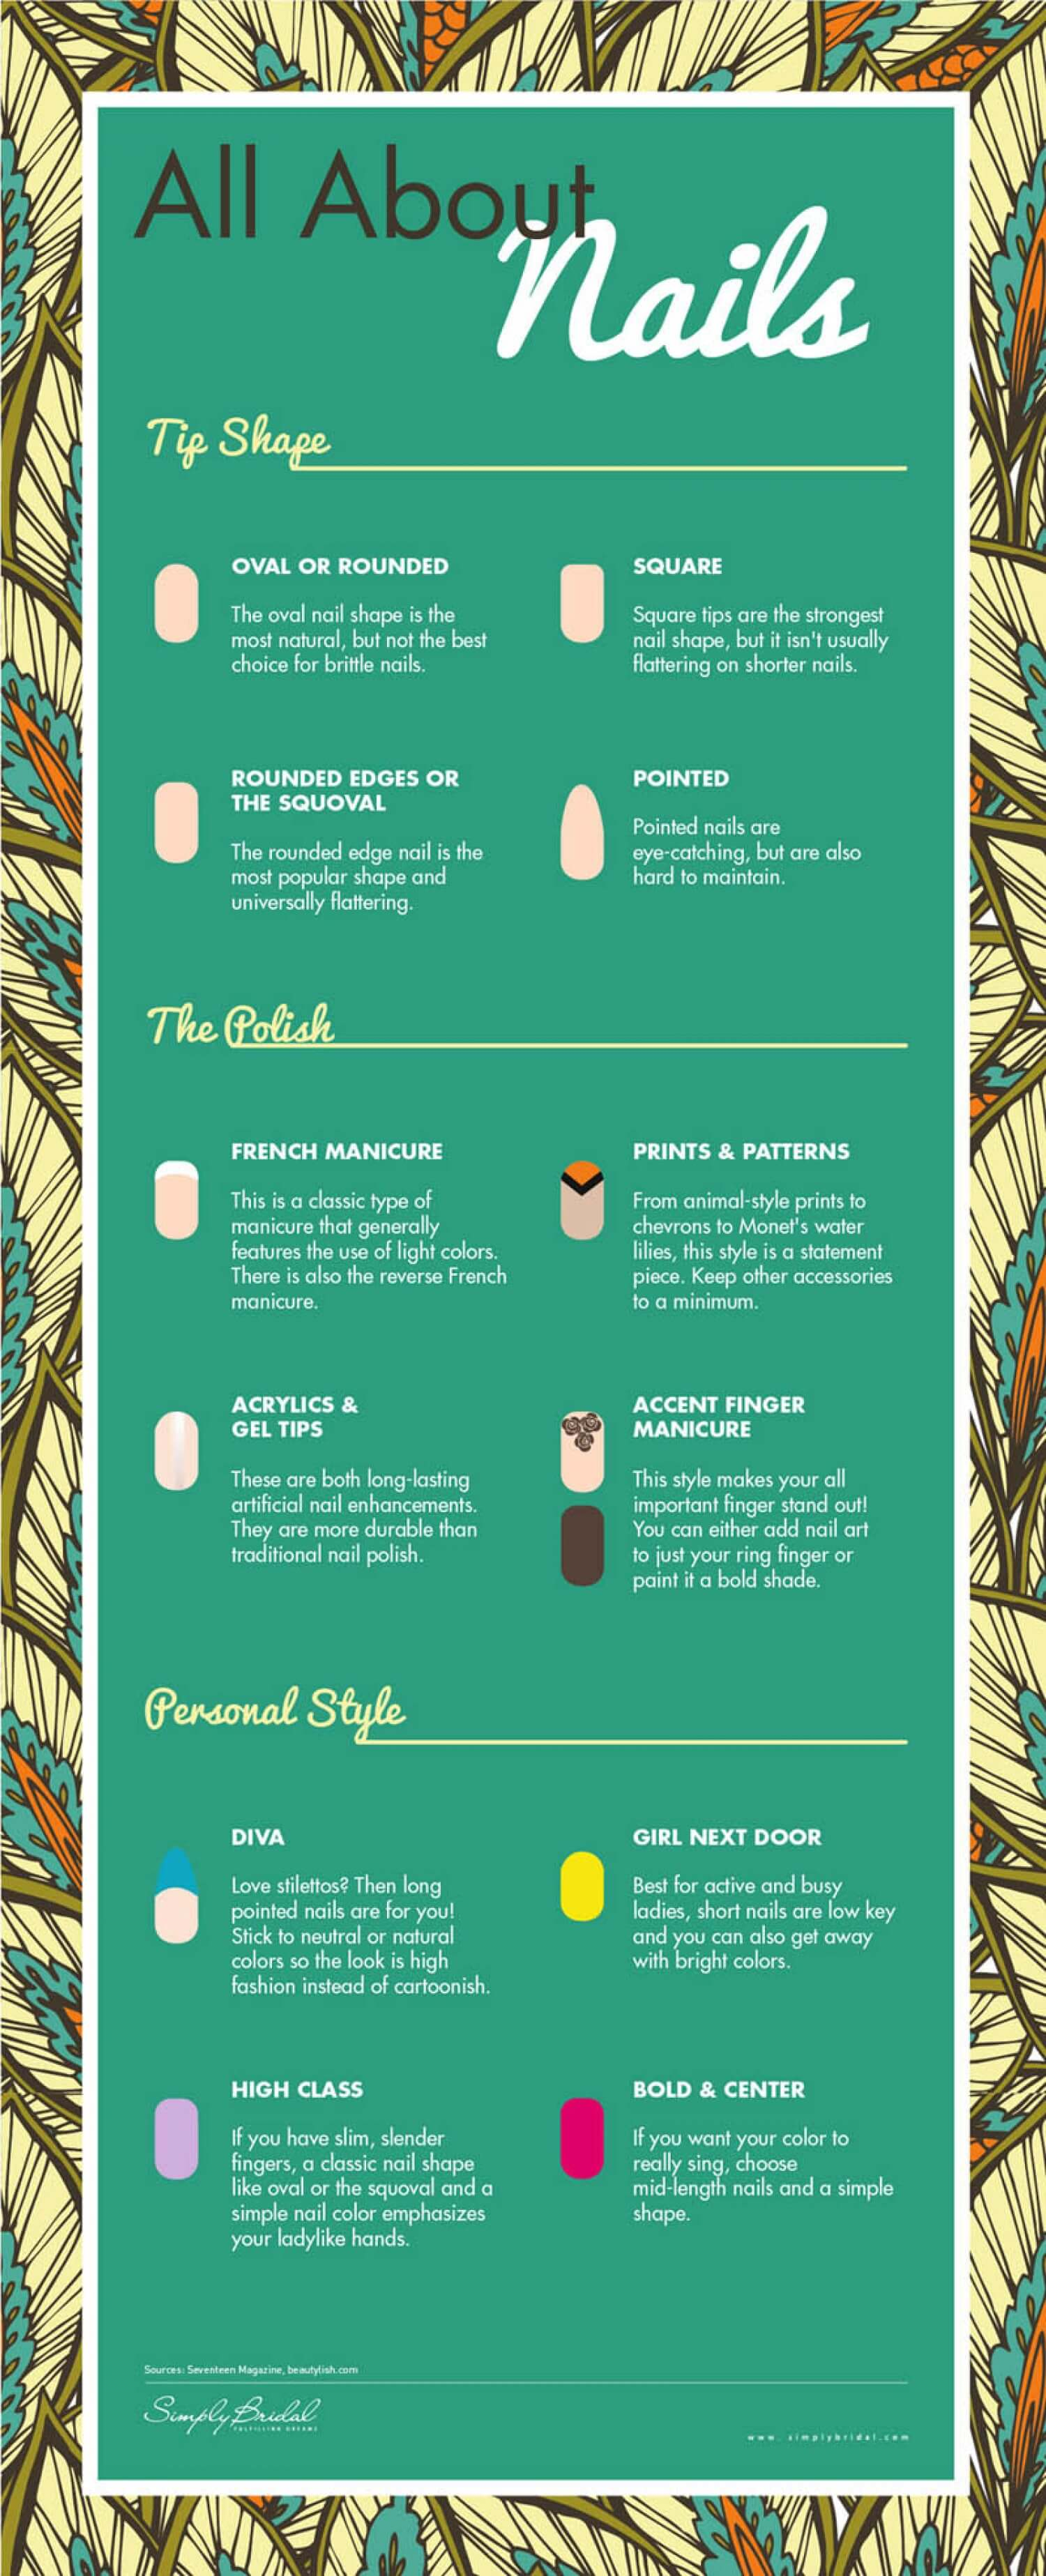 all-about-nails-simply-bridal-via-tipsographic